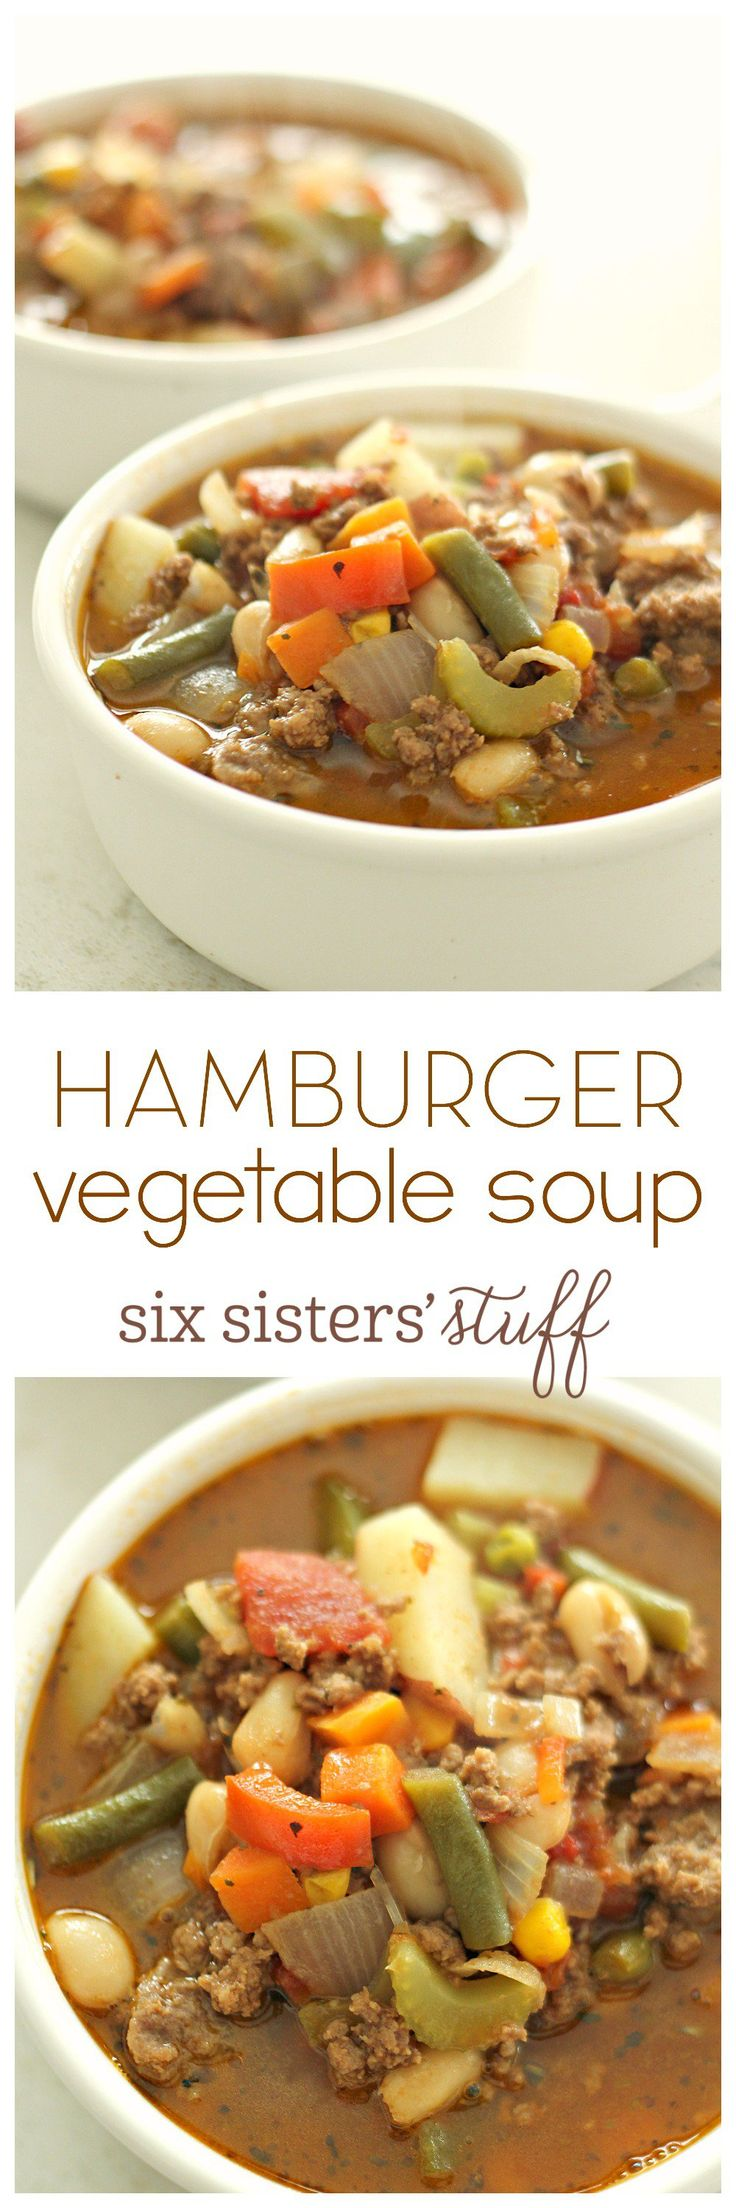 Hamburger Vegetable Soup from SixSistersStuff.com - easy and healthy!                                                                                                                                                                                 More